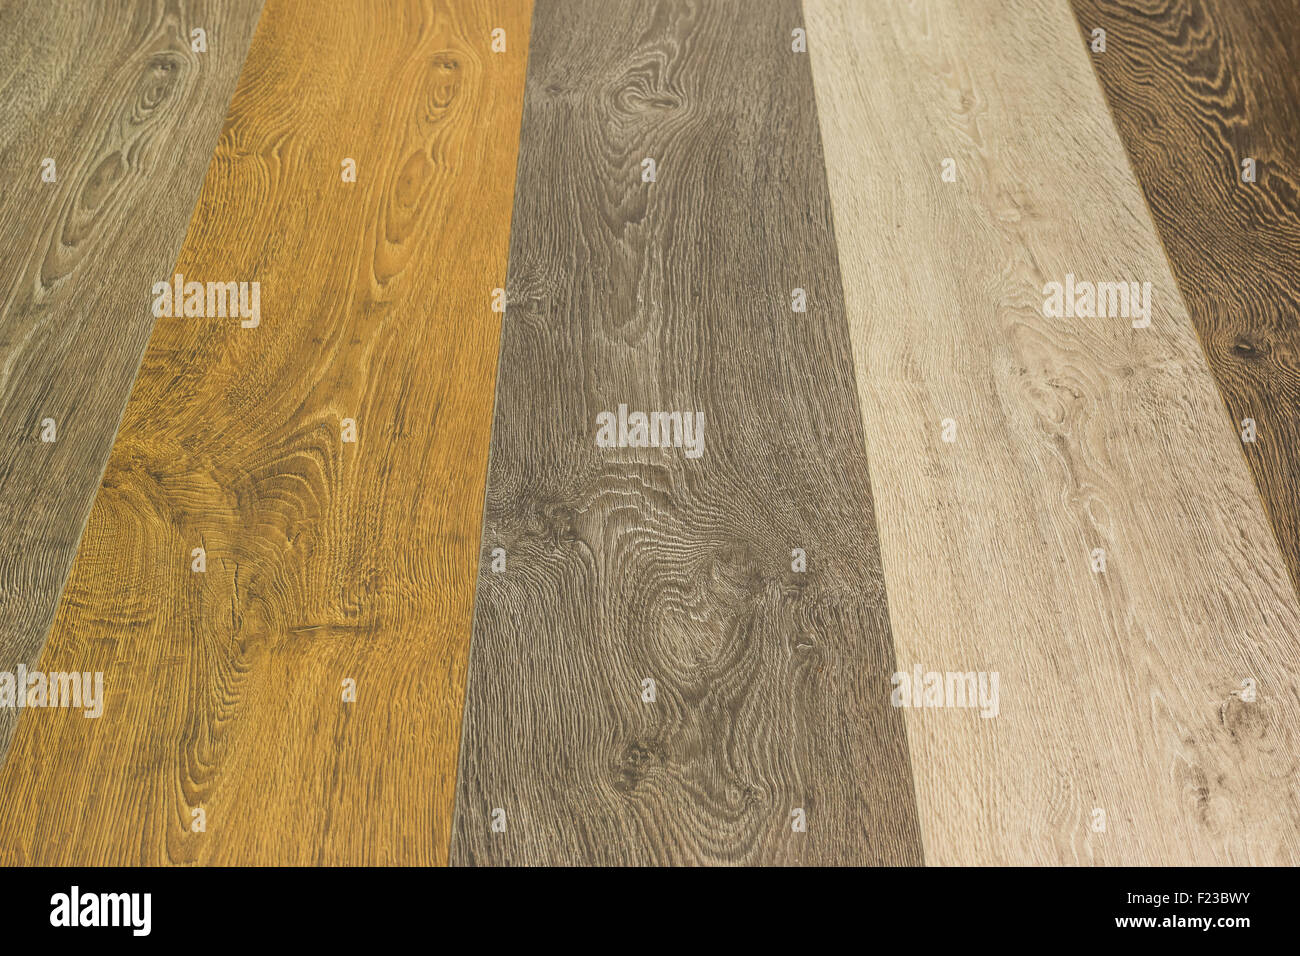 Different laminate - Stock Image